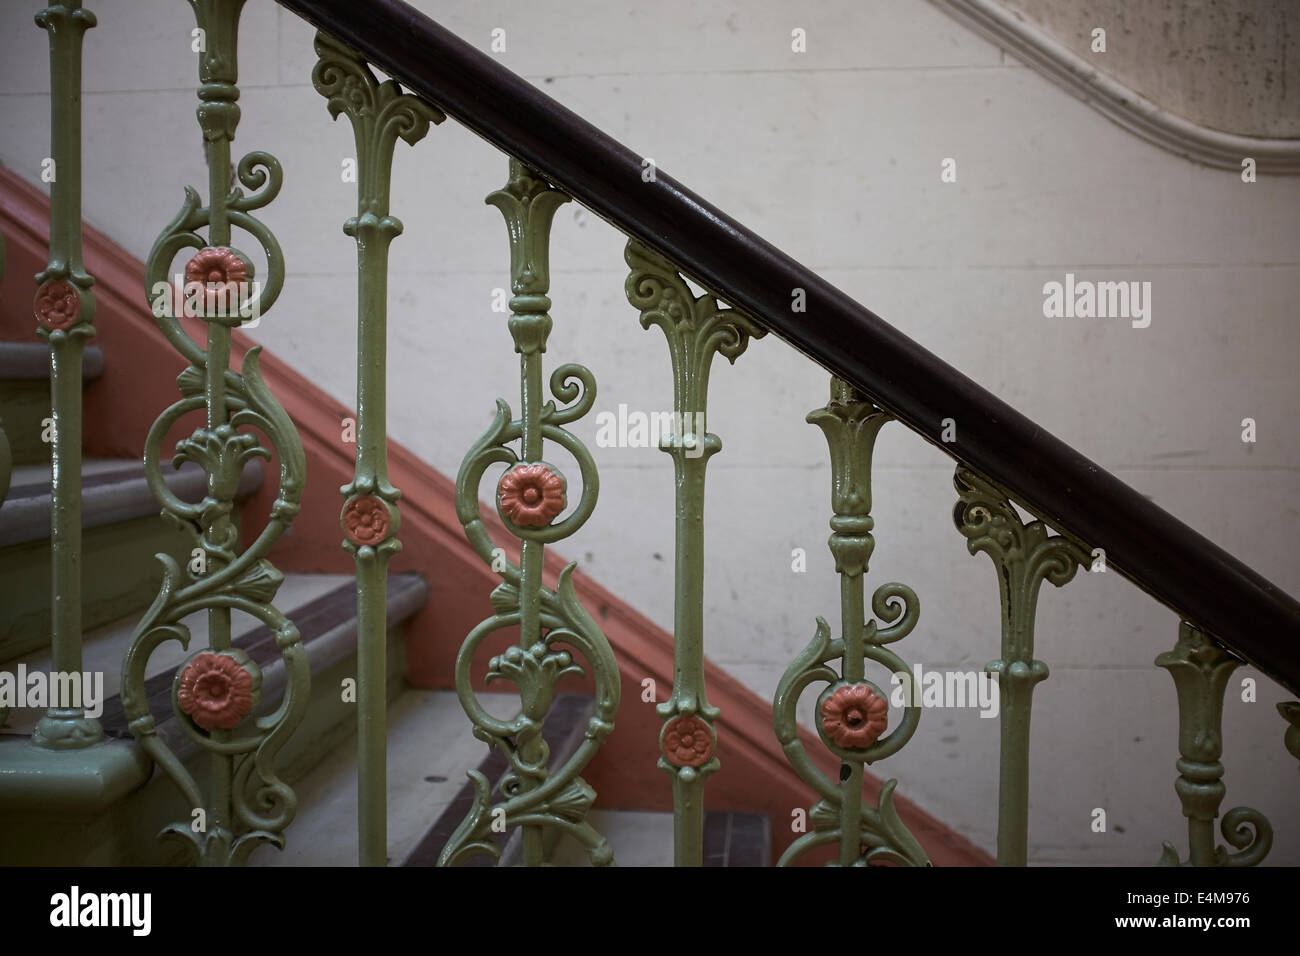 Close Up Detail Of Old Metal Decorative Stair Spindles Stock Photo | Decorative Handrails For Stairs | Main Entrance | Solid Wood | Different Style | Elegant | Steel Pipe